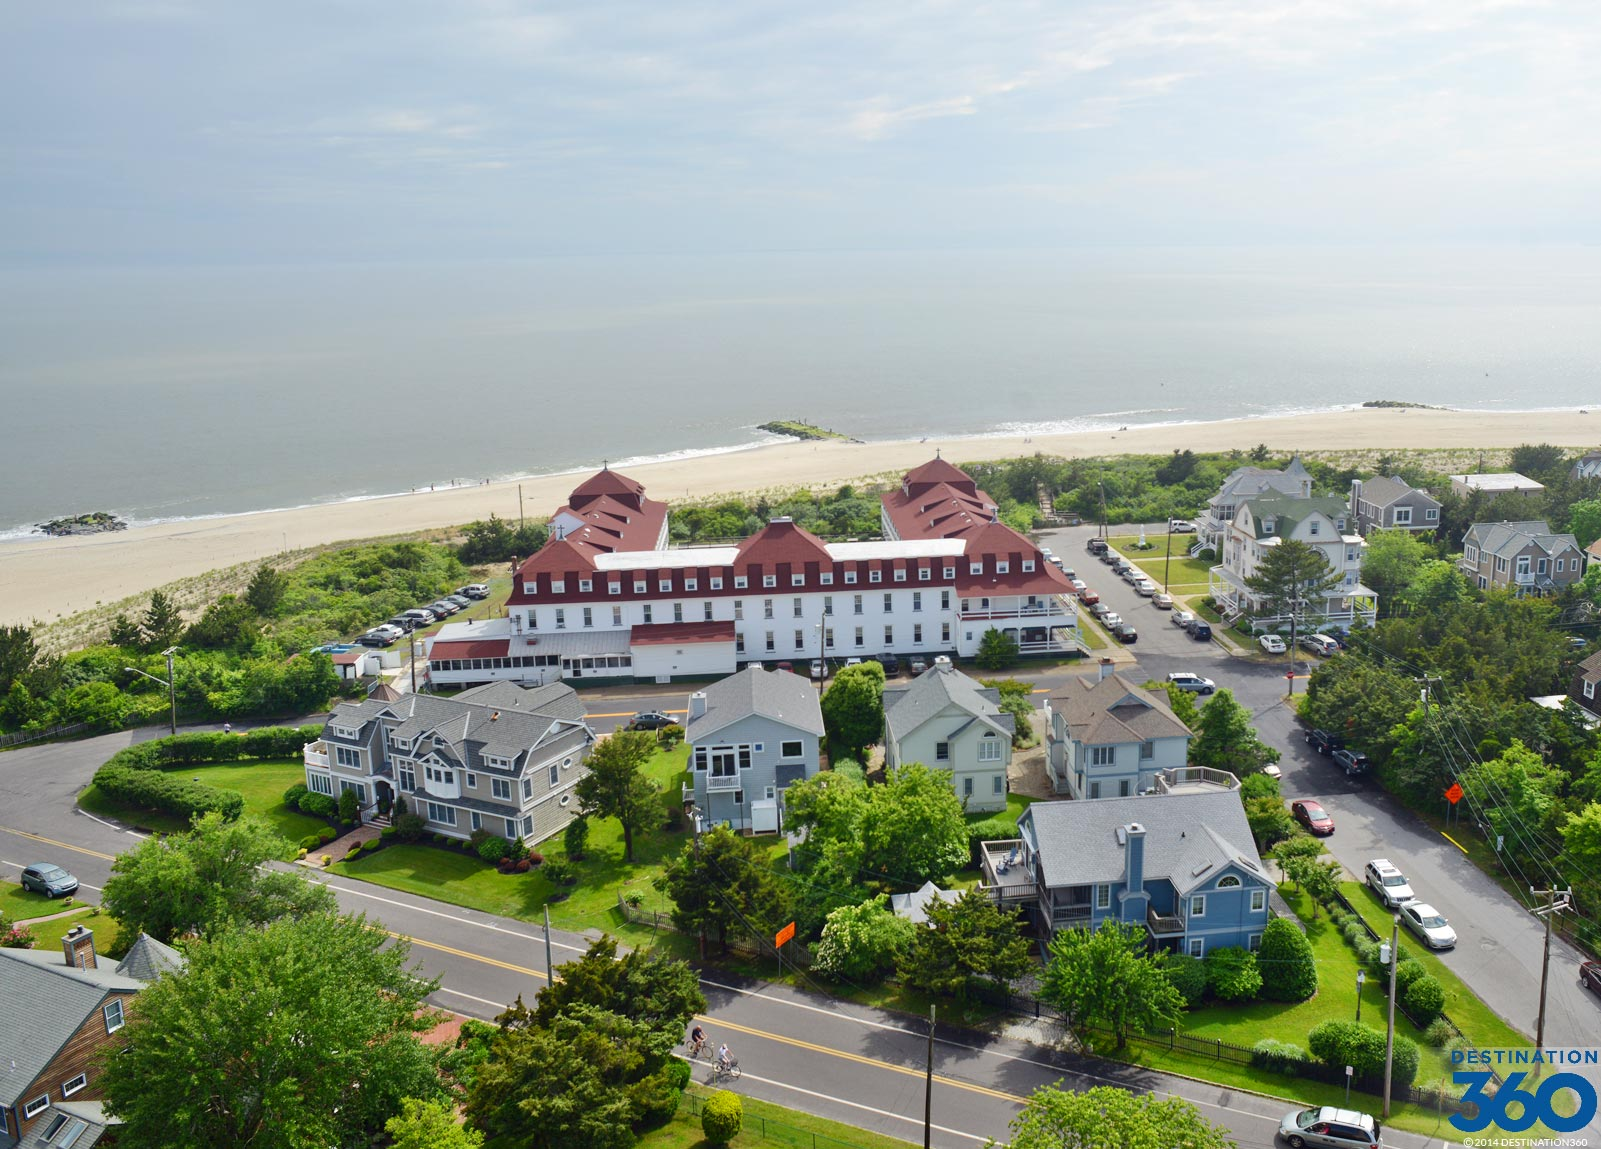 Cape May Luxury Hotels